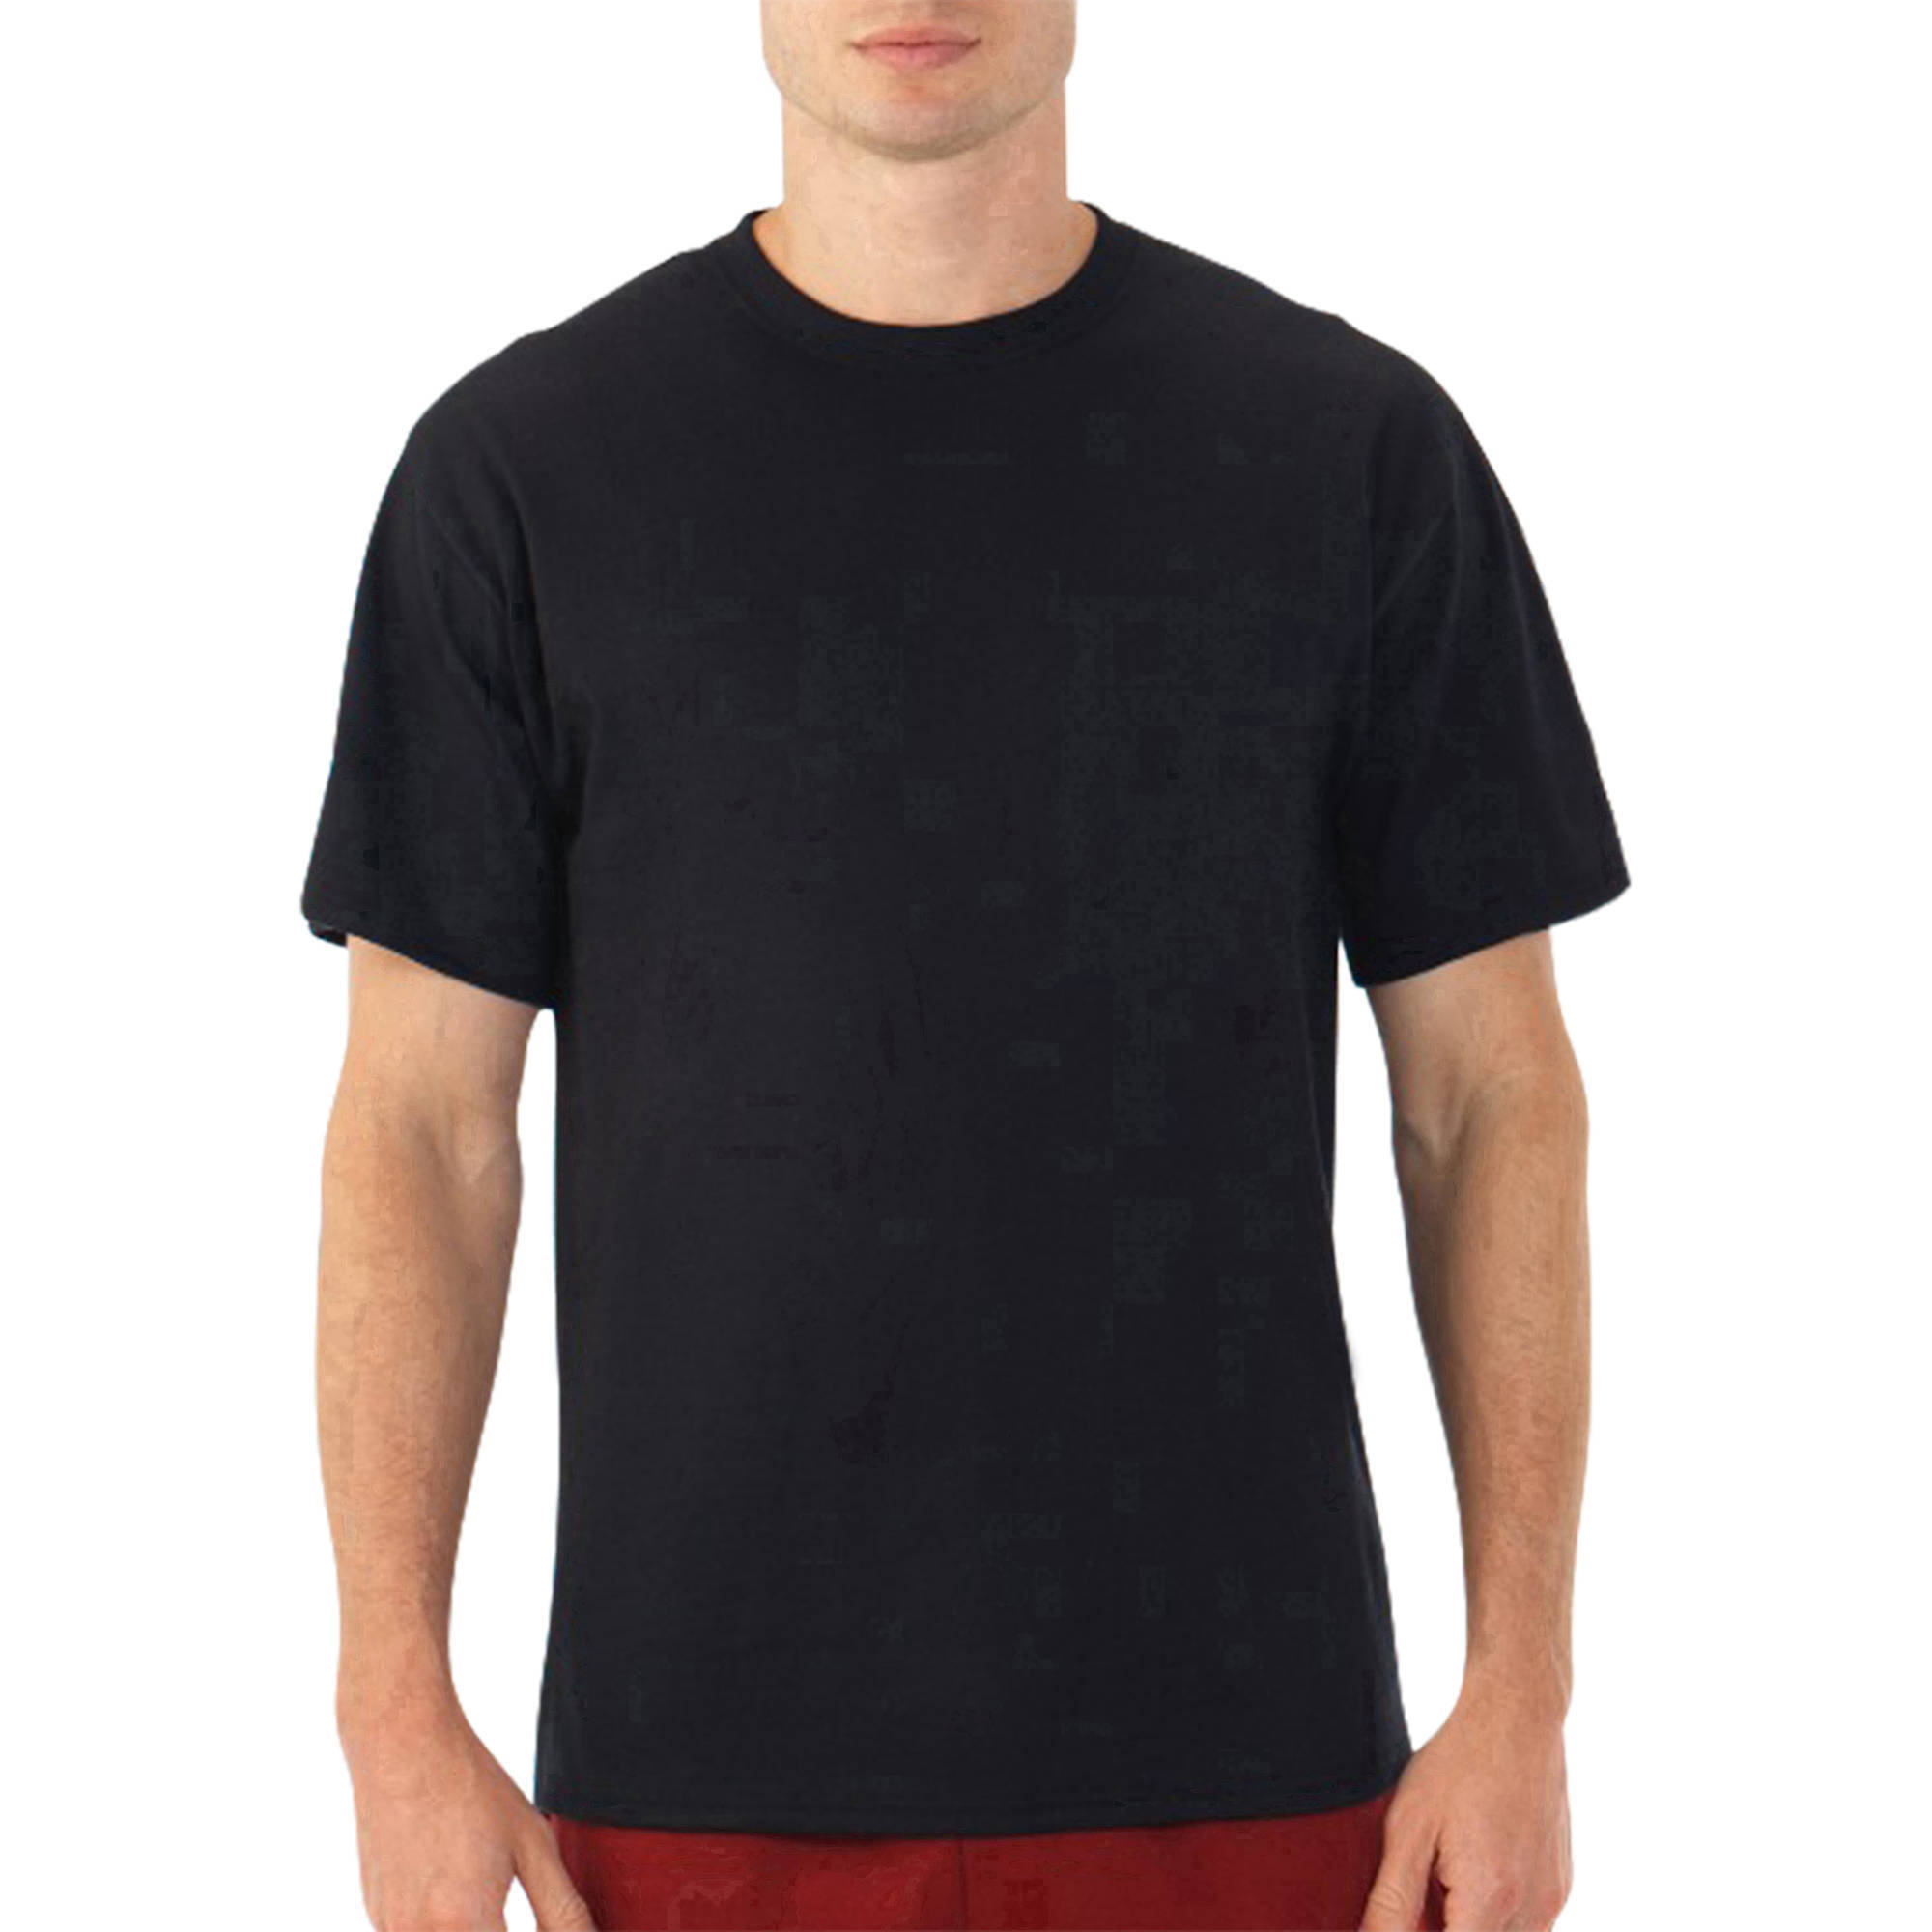 New Fruit of the Loom Platinum EverSoft Men's Short Sleeve Crew T Shirt